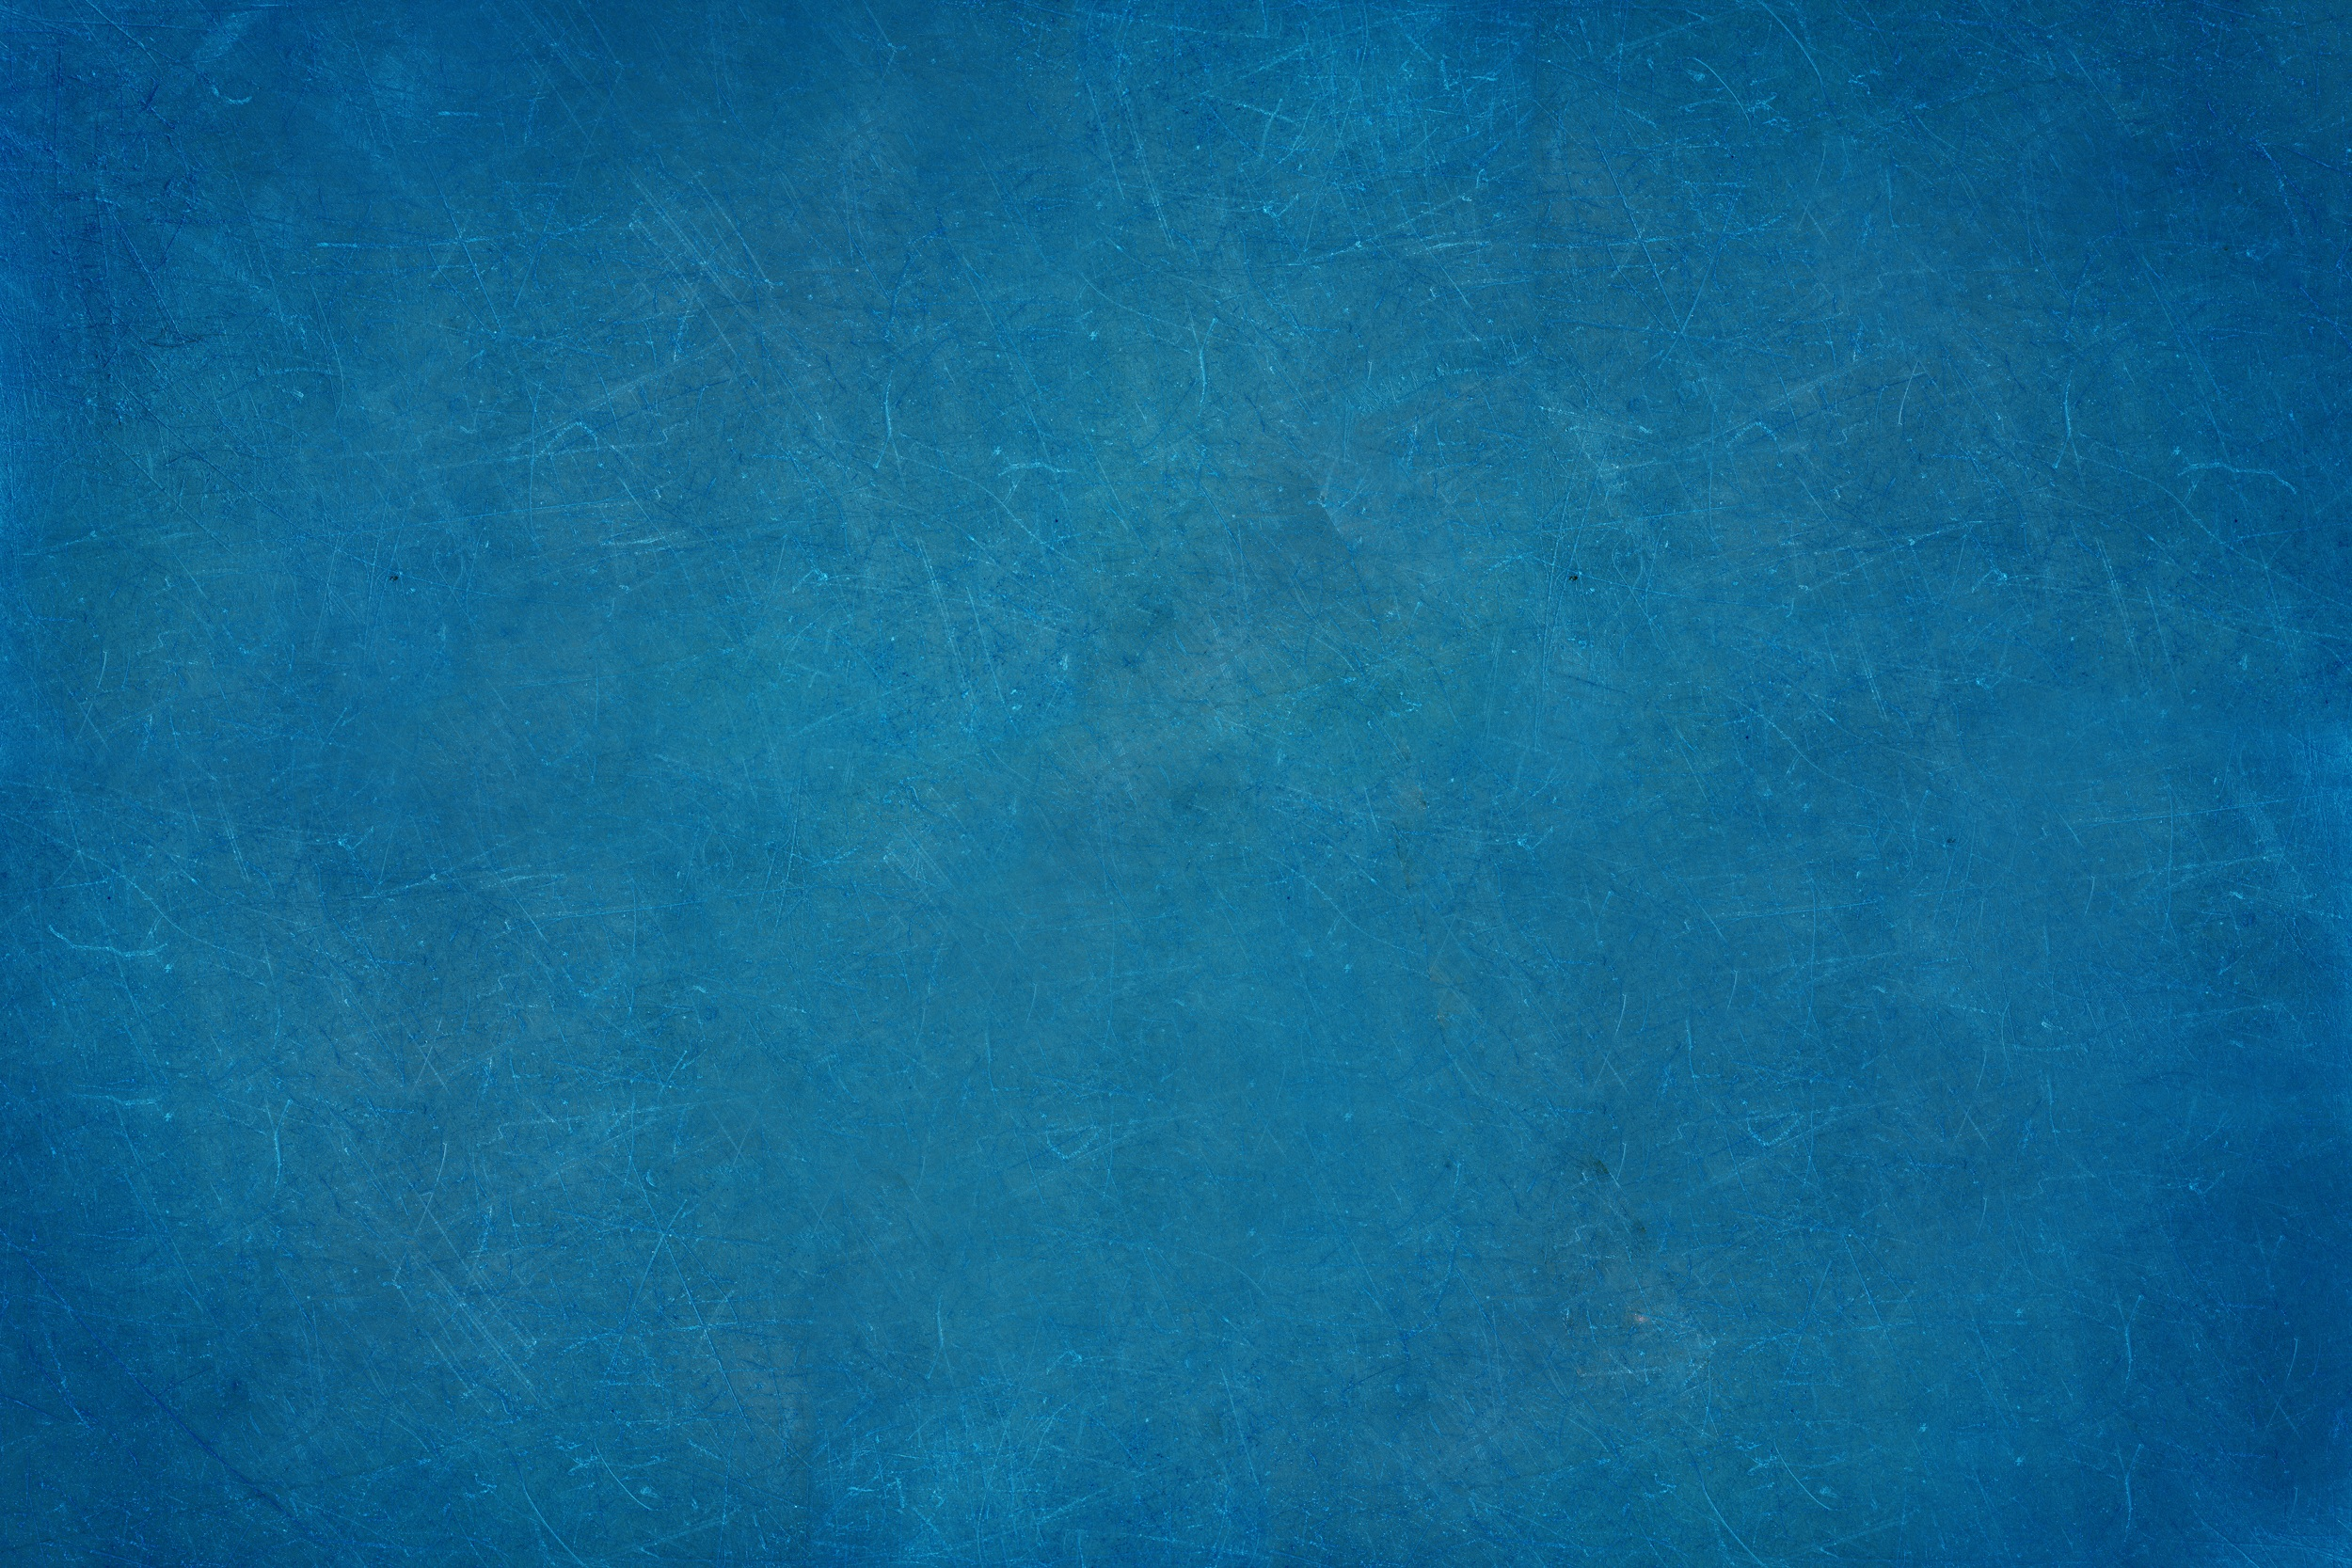 Blue Texture Wallpapers - Wallpaper Cave